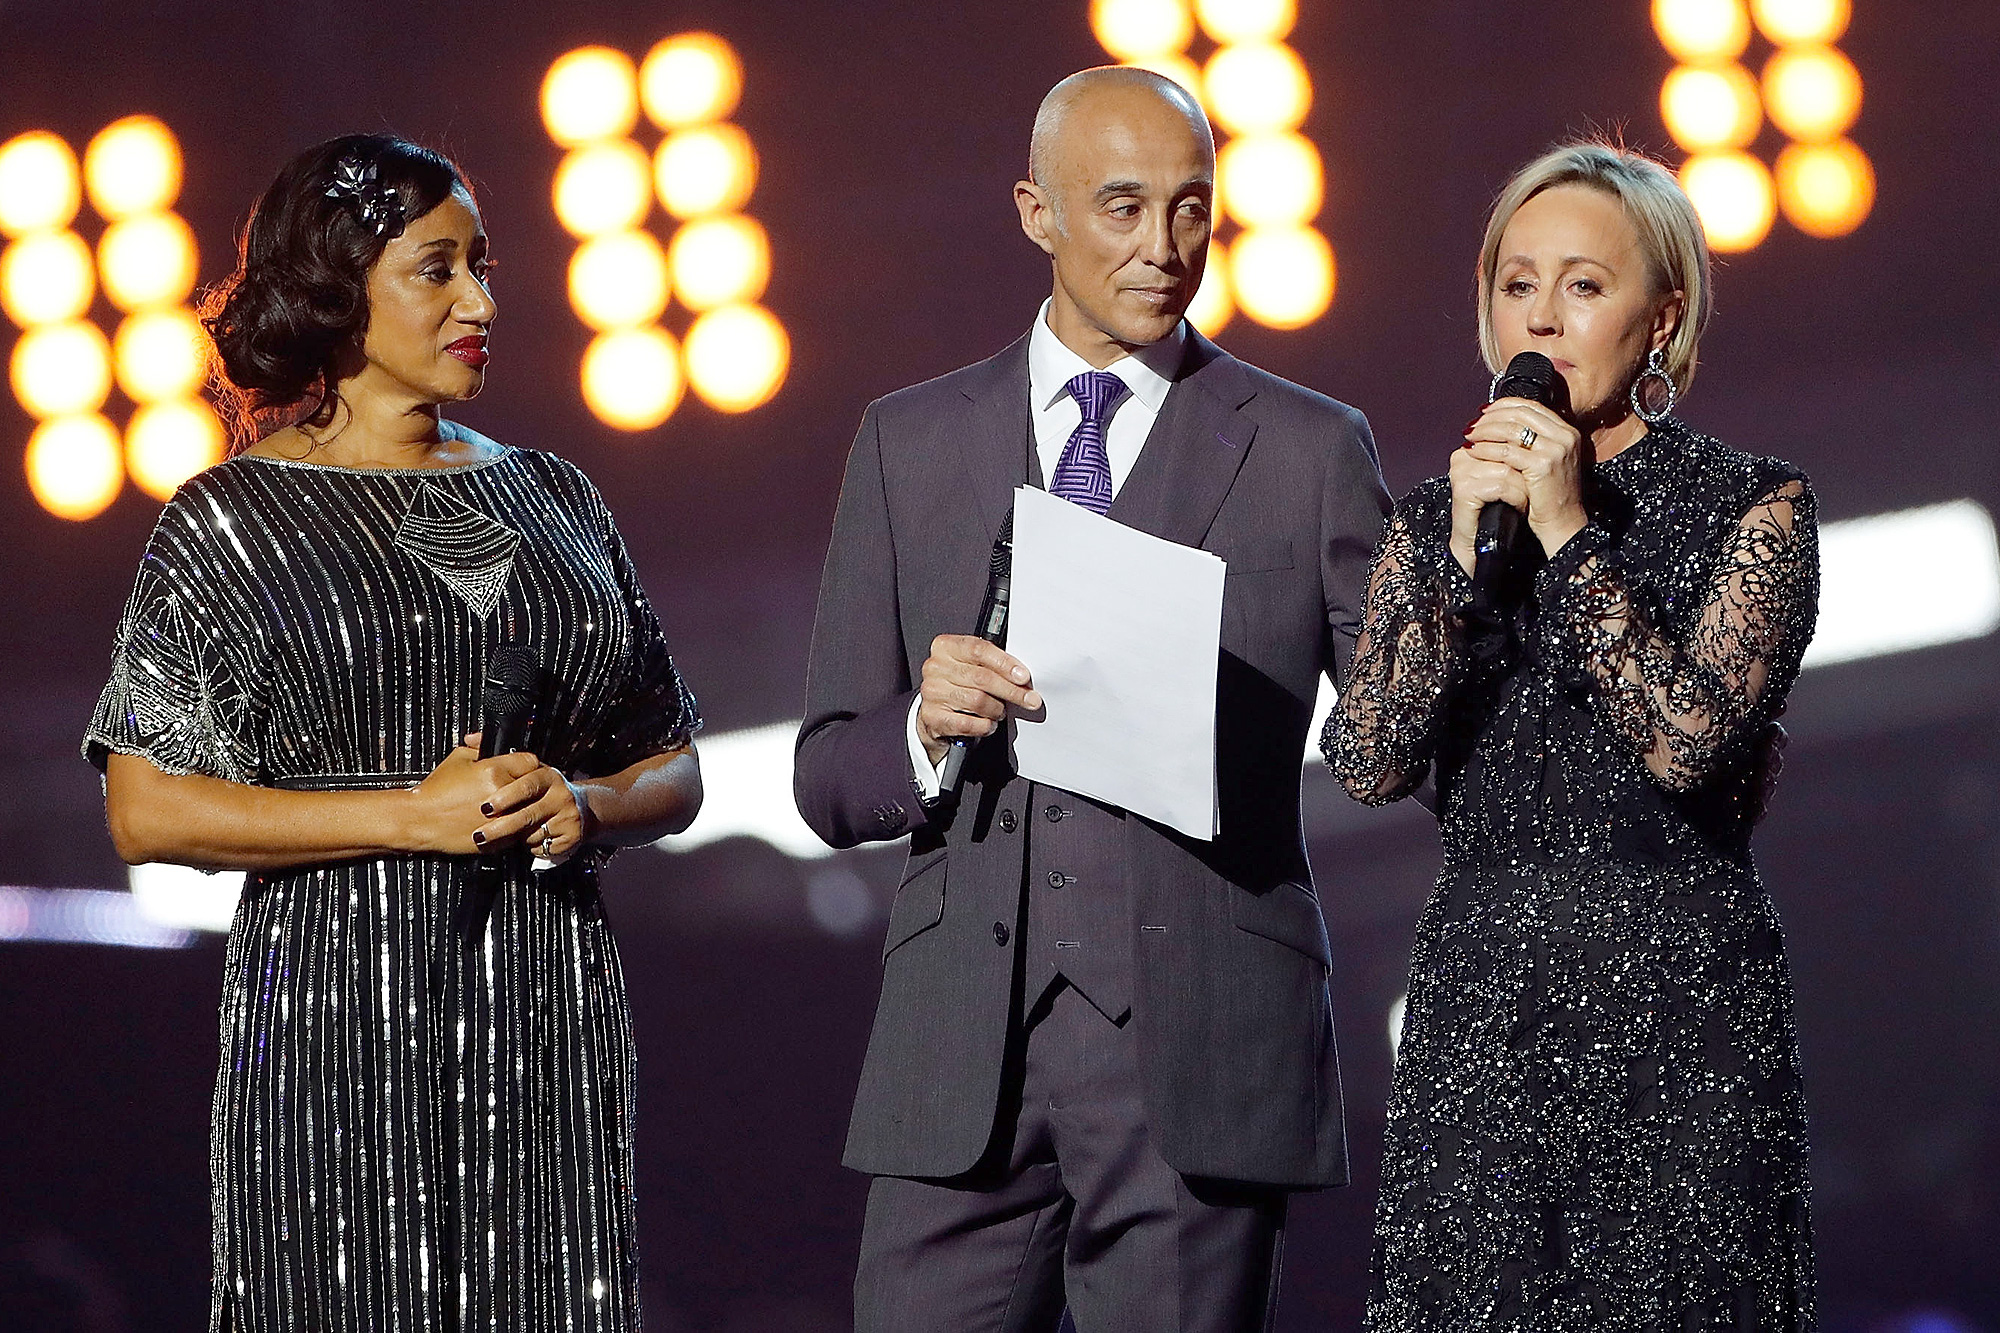 """LONDON, ENGLAND - FEBRUARY 22:  EDITORIAL USE ONLY.  (L-R) Helen """"Pepsi"""" DeMacque, Andrew Ridgeley and Shirlie Holliman pay tribute to George Michael on stage at The BRIT Awards 2017 at The O2 Arena on February 22, 2017 in London, England.  (Photo by David M. Benett/Dave Benett/Getty Images )"""